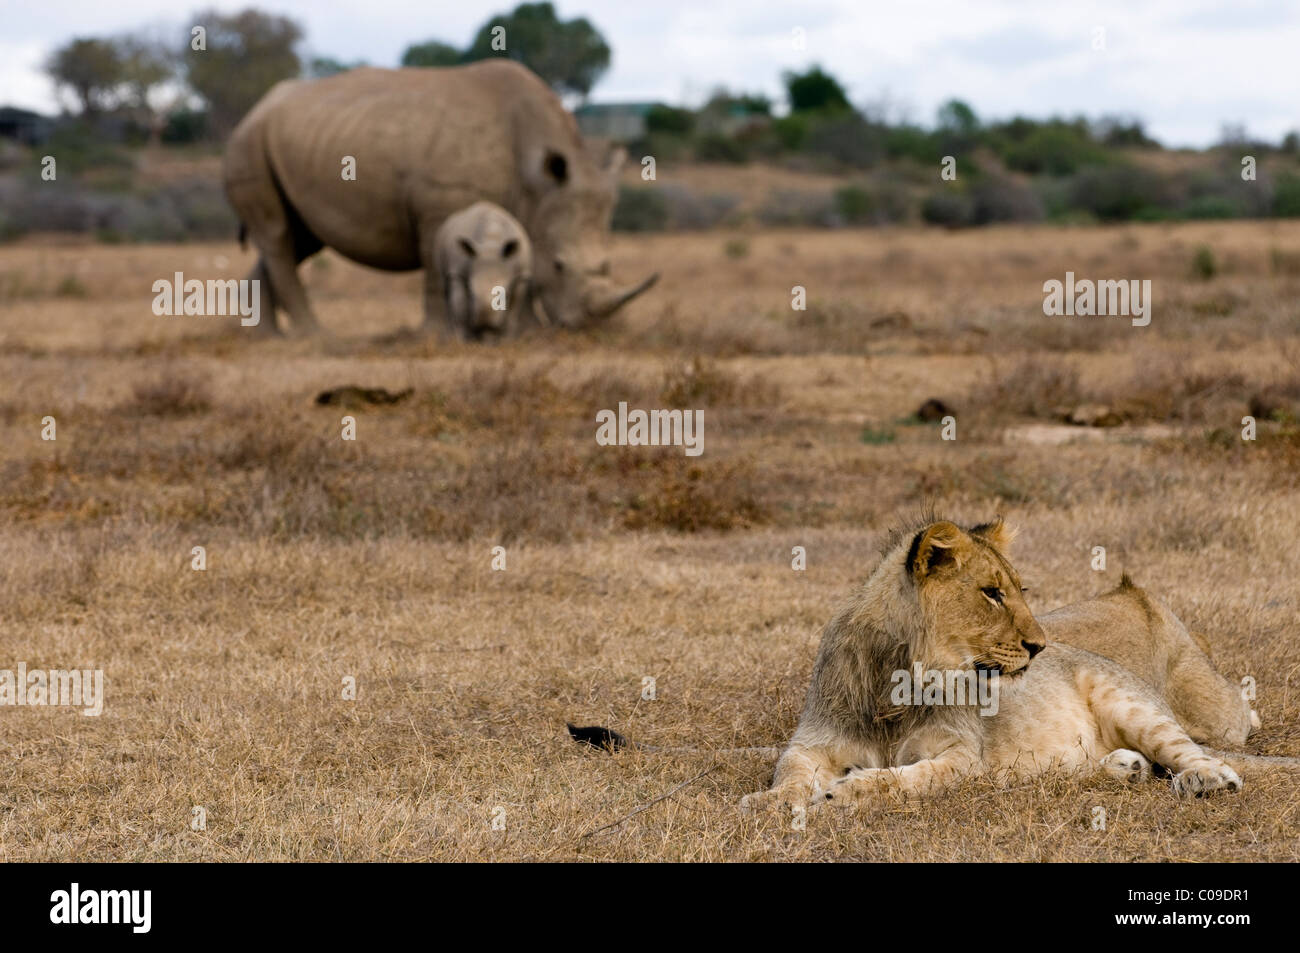 Lion and White Rhinos, Kwandwe Game Reserve, Eastern Cape, South Africa - Stock Image